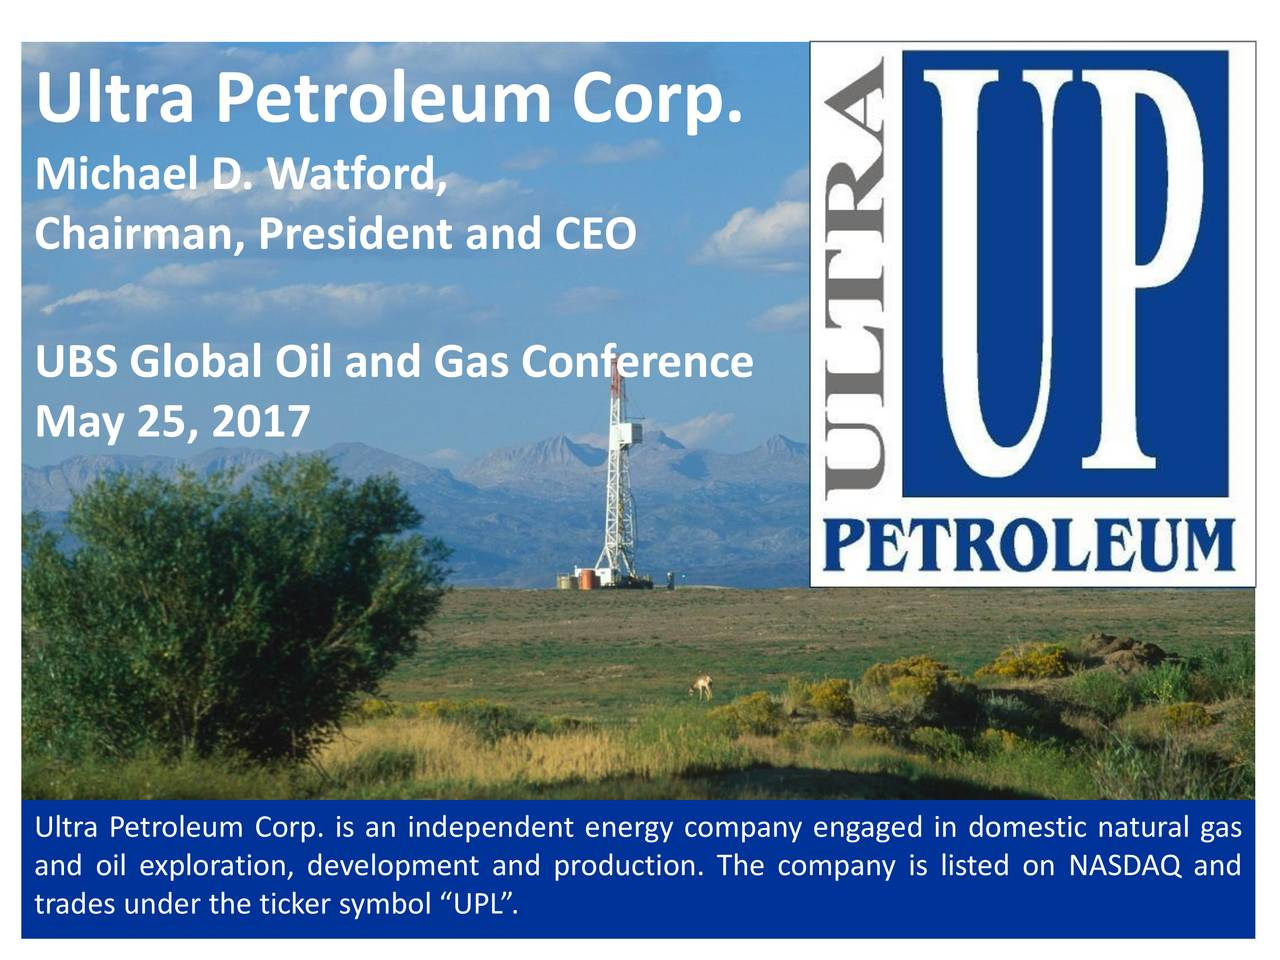 Ultra Petroleum Upl Presents At Ubs Global Oil And Gas Conference